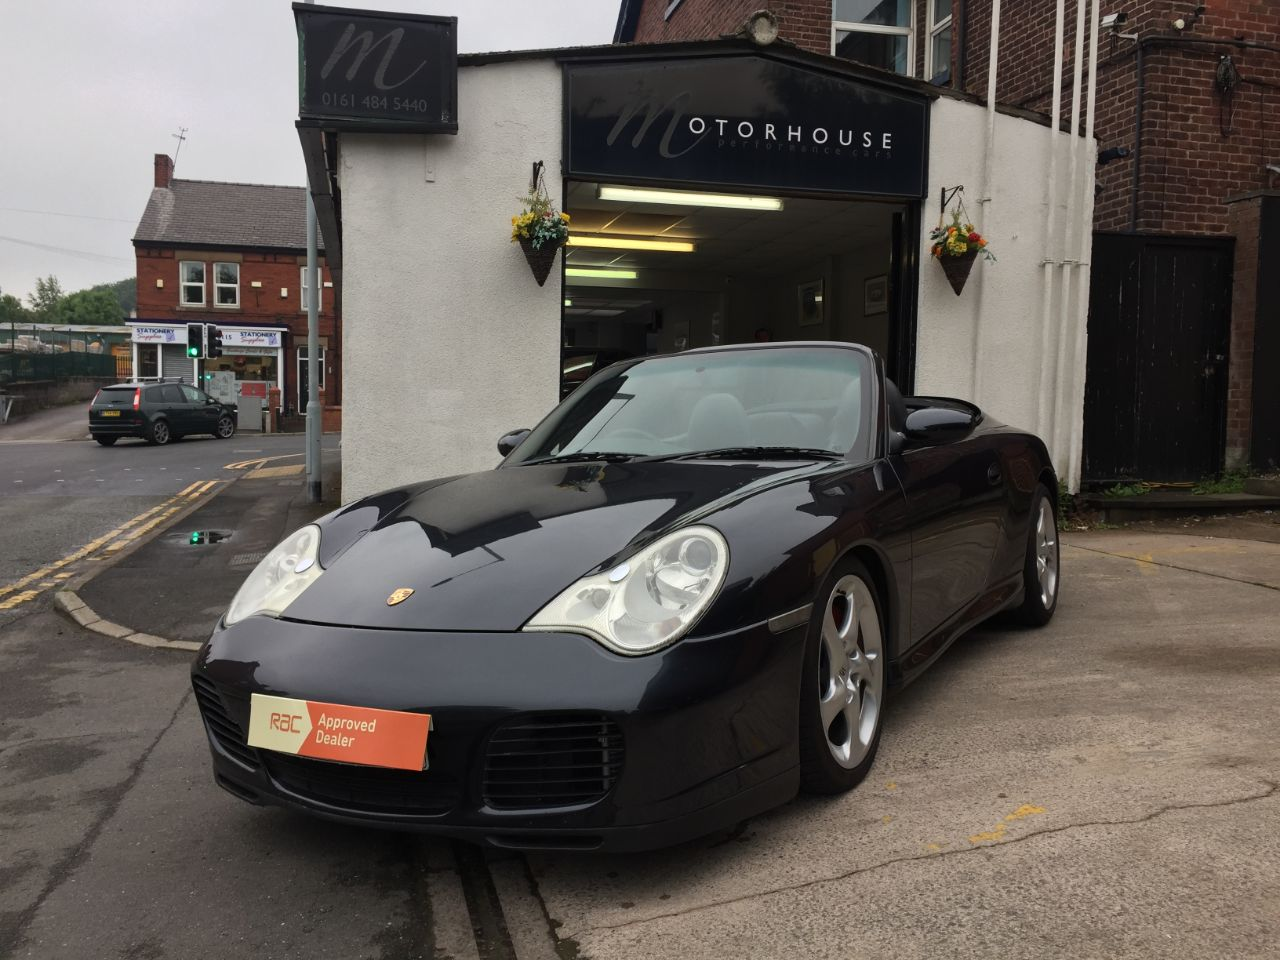 Porsche 911 3.6 S 2dr Convertible Petrol Grey at Motorhouse Cheshire Stockport